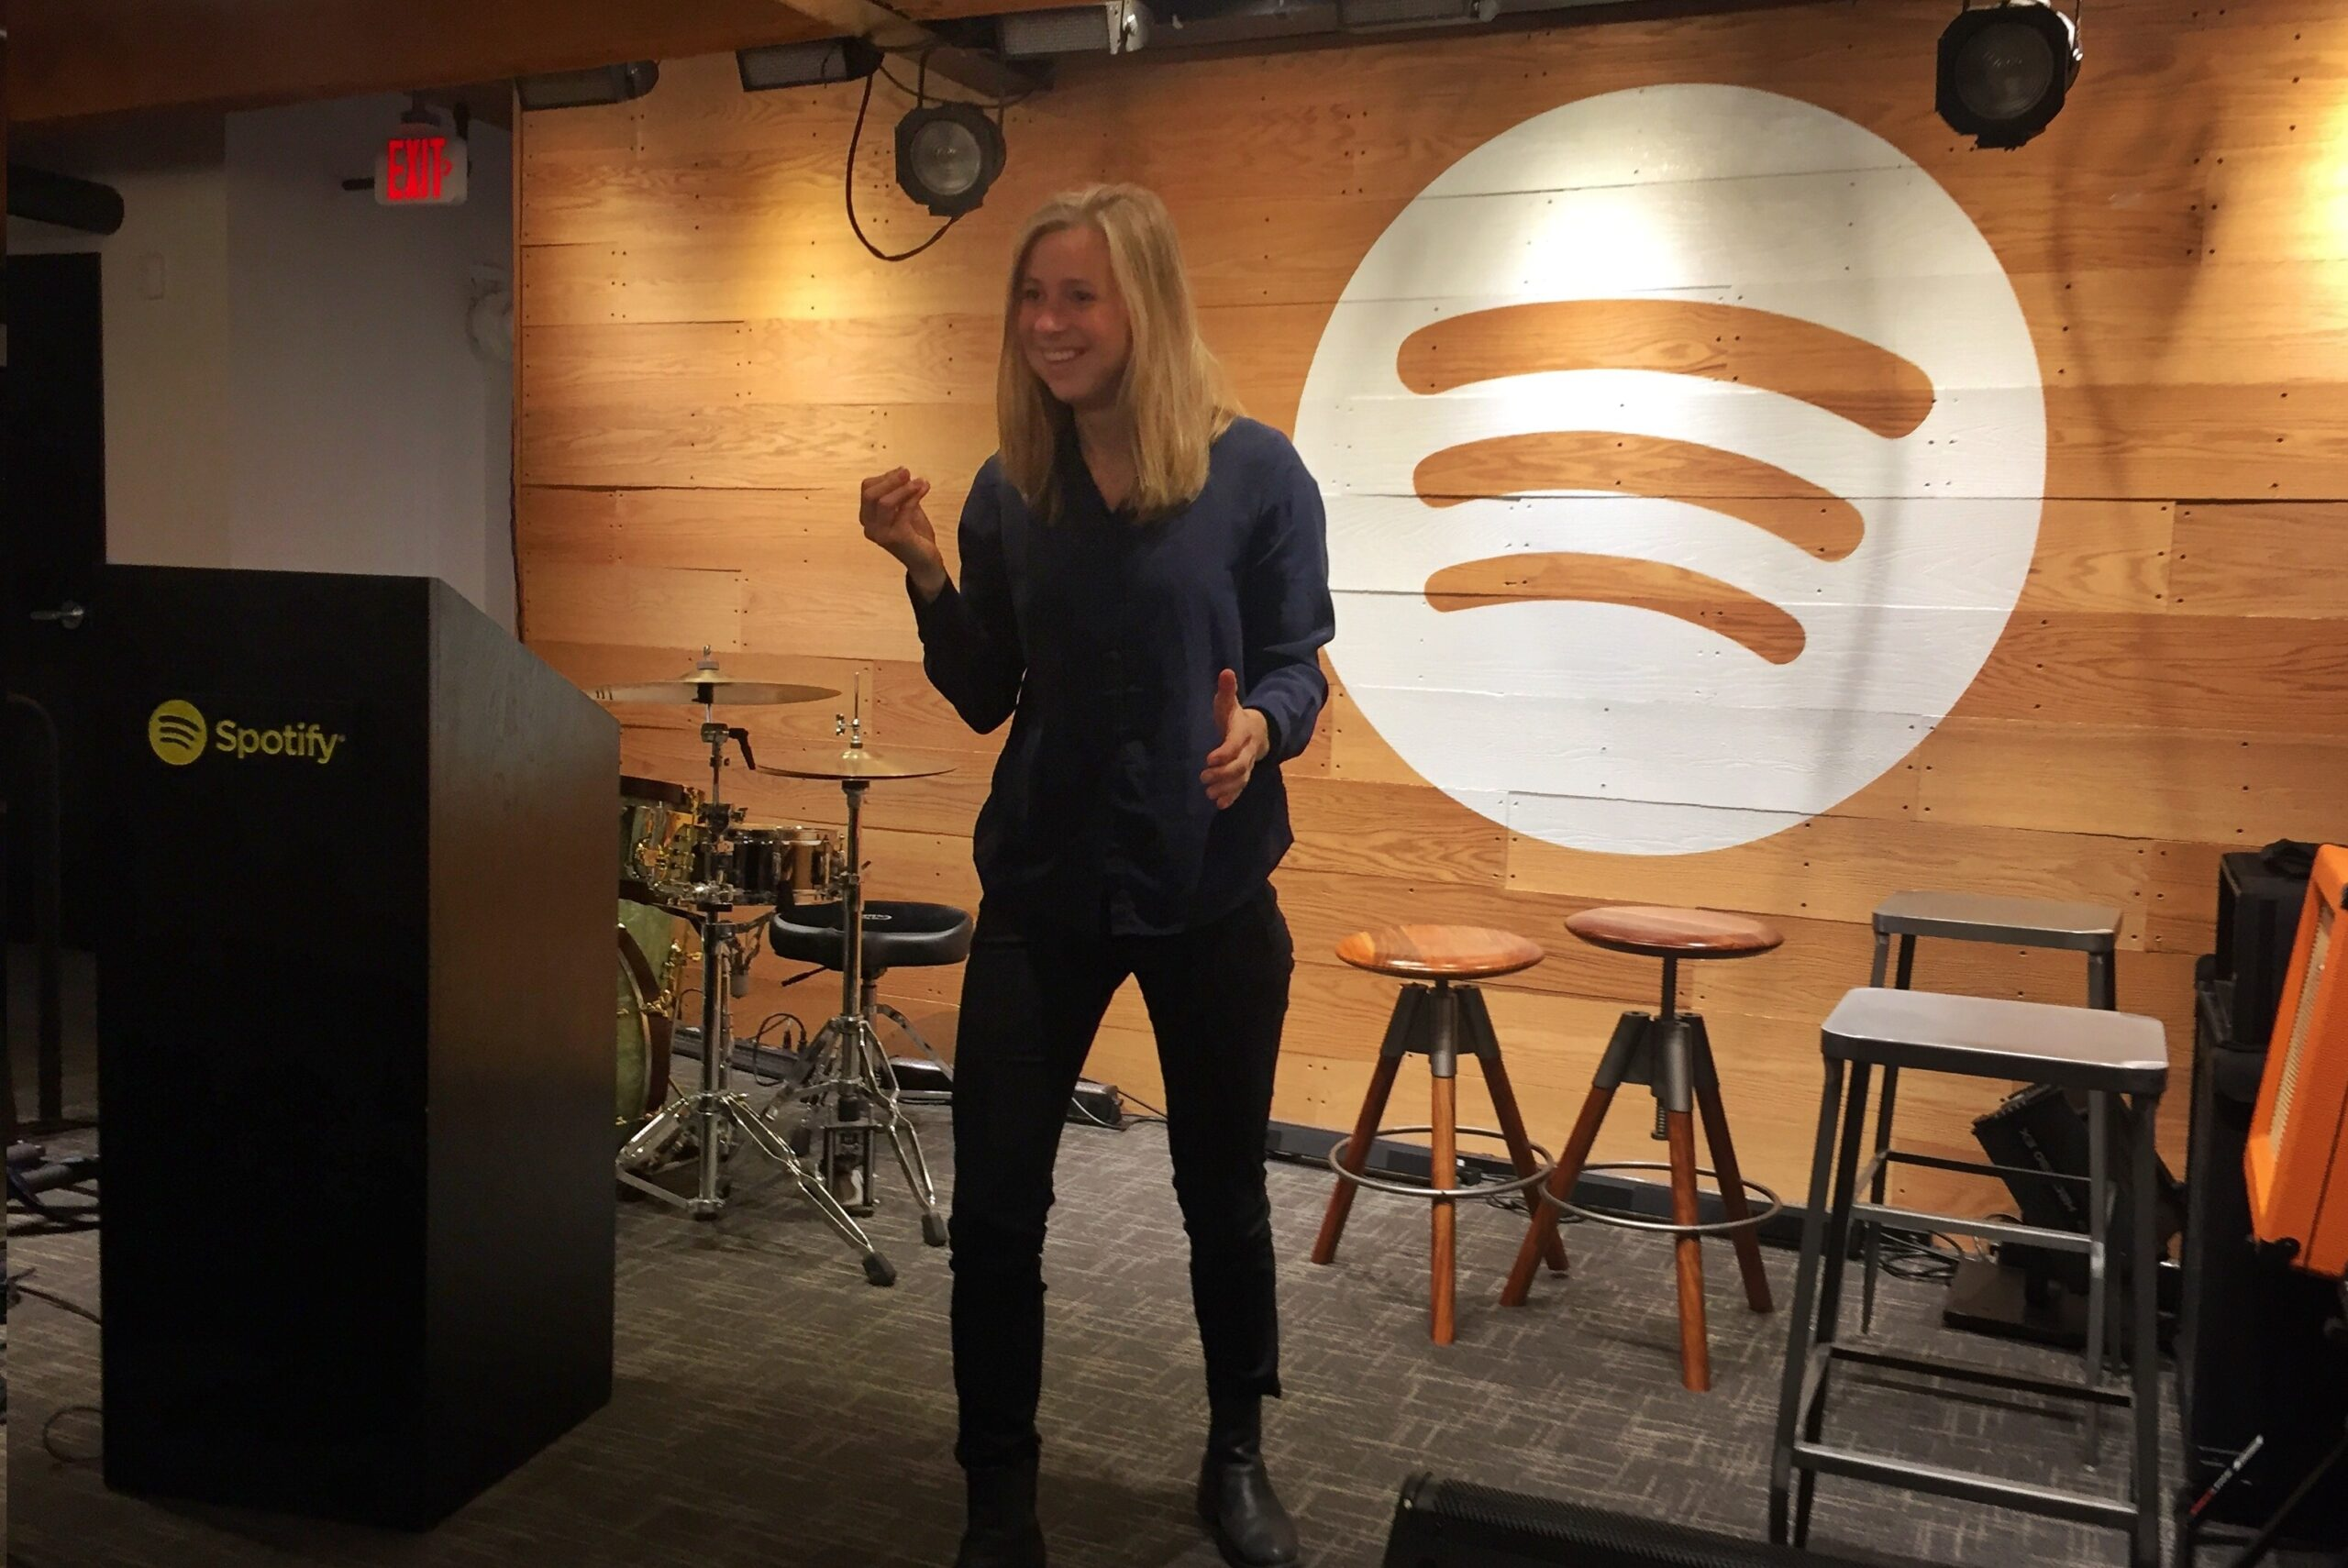 Our Key note Speaker Malin Rapp at Spotifys Headquarter